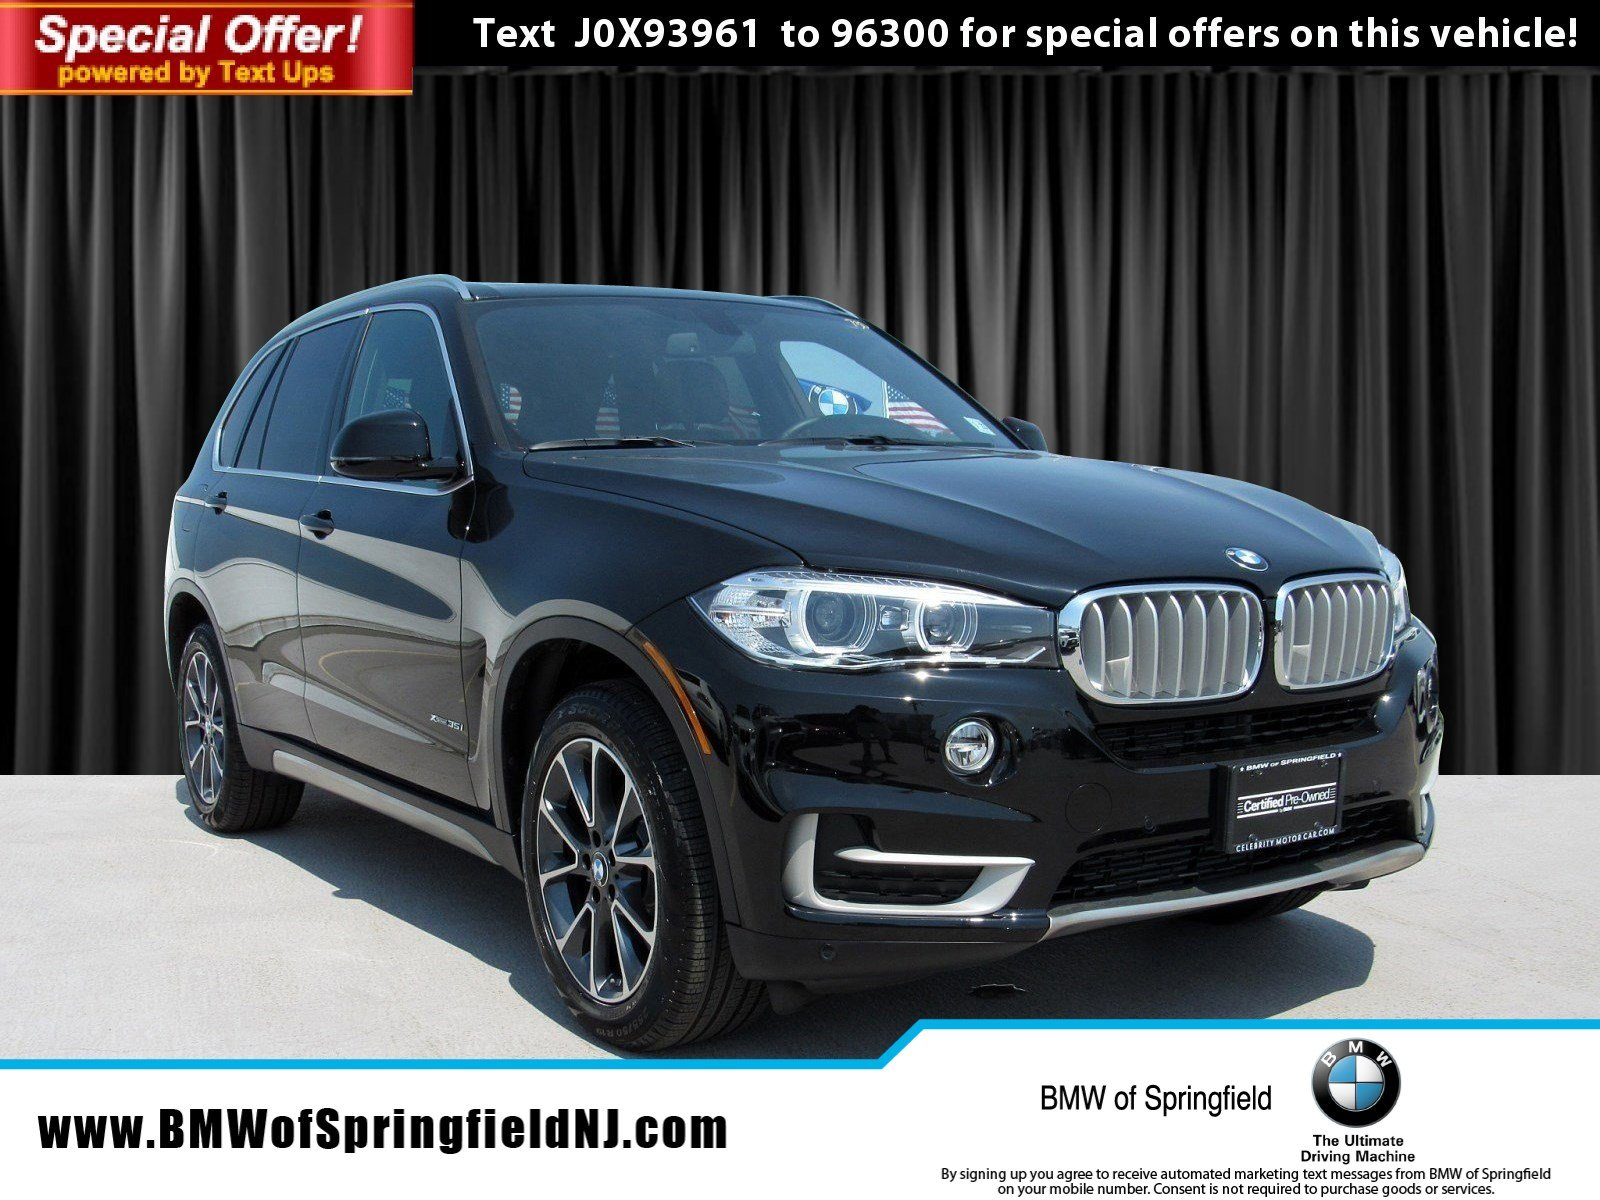 Certified Pre-Owned 2018 BMW X5 xDrive35i With Navigation & AWD